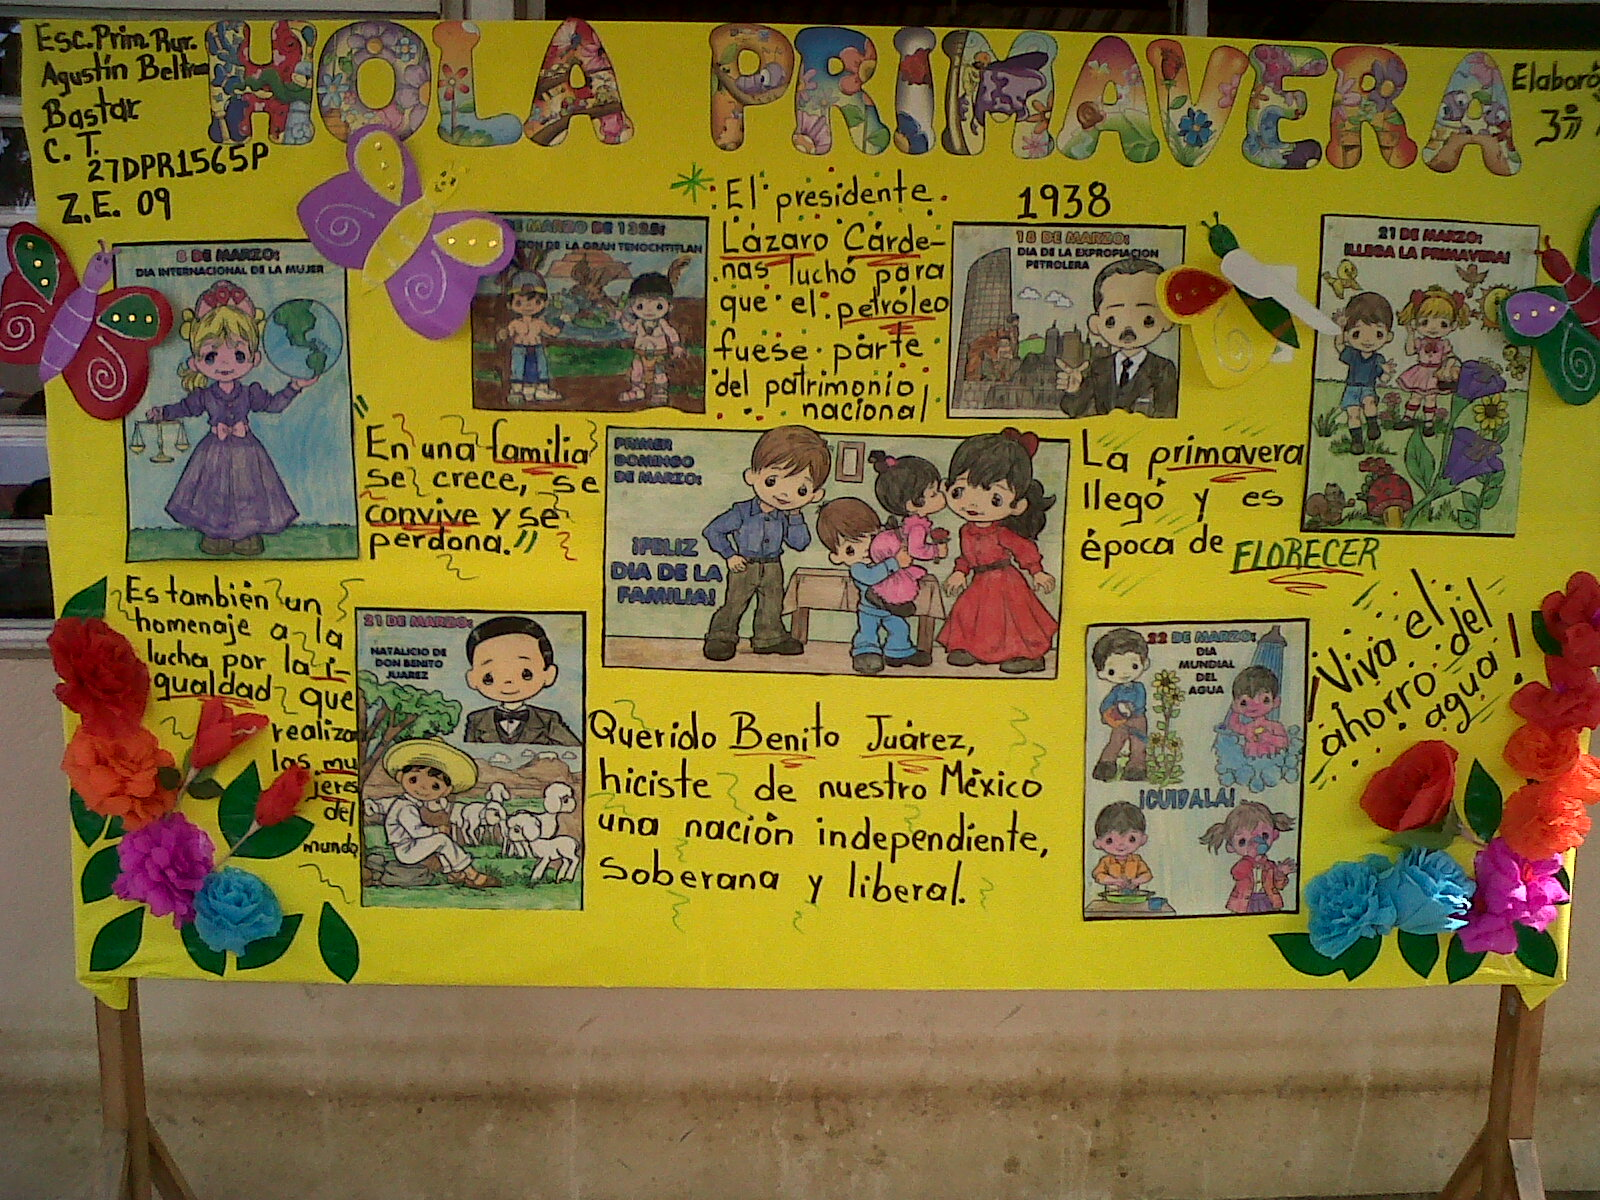 Periodico mural mes de abril 11 imagenes educativas for El mural pelicula descargar